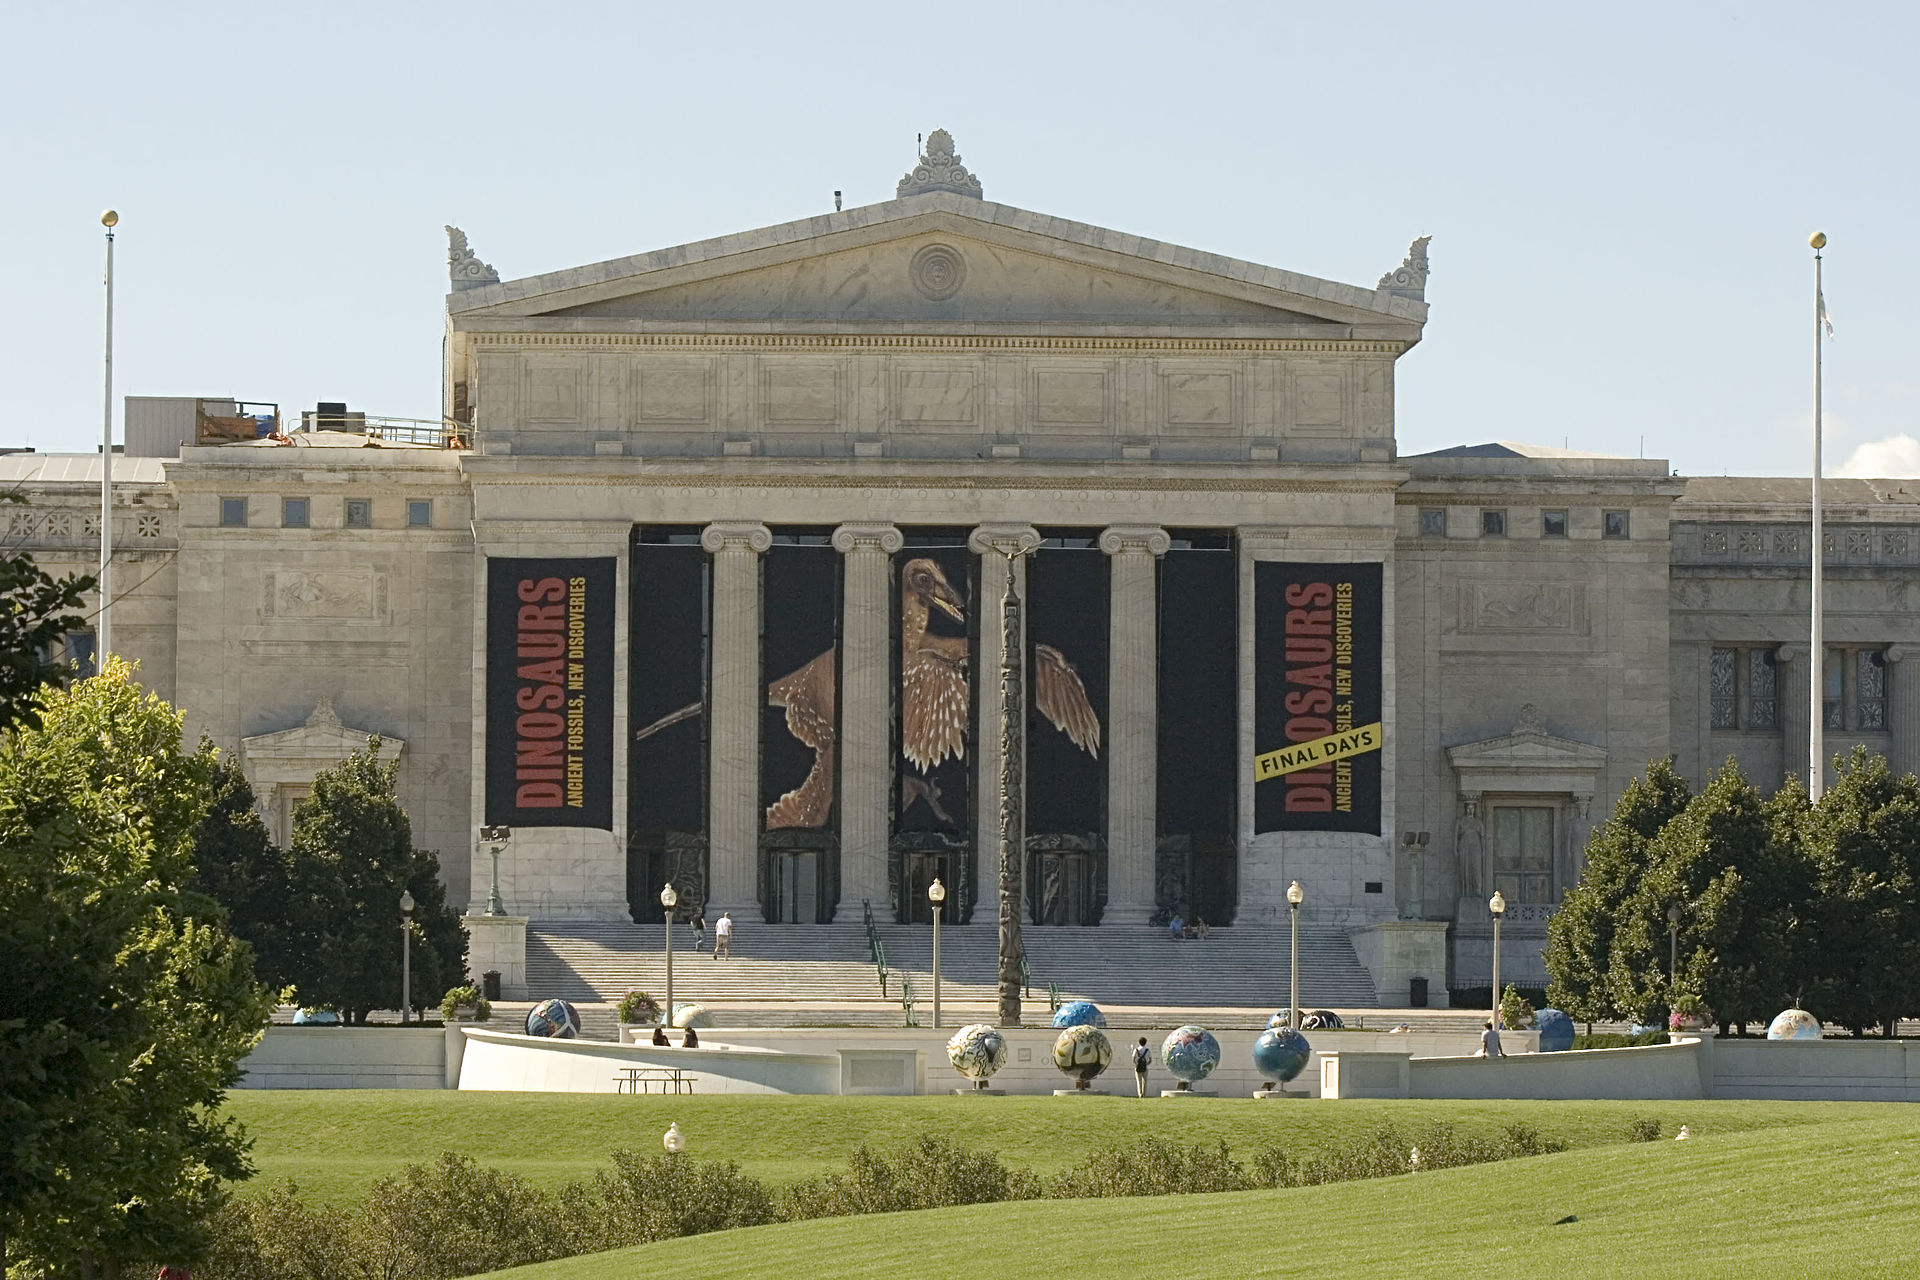 The Field Museum by Kelly Martin, CC